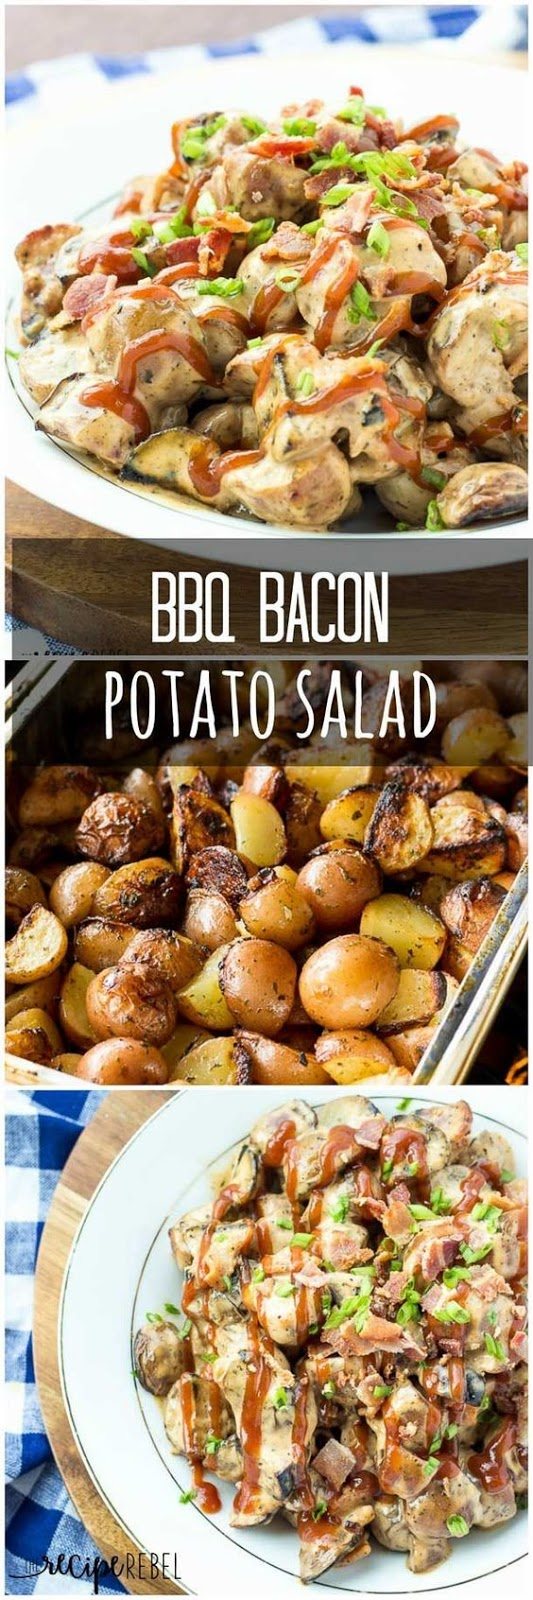 BBQ Bacon Potato Salad with Grilled Potatoes